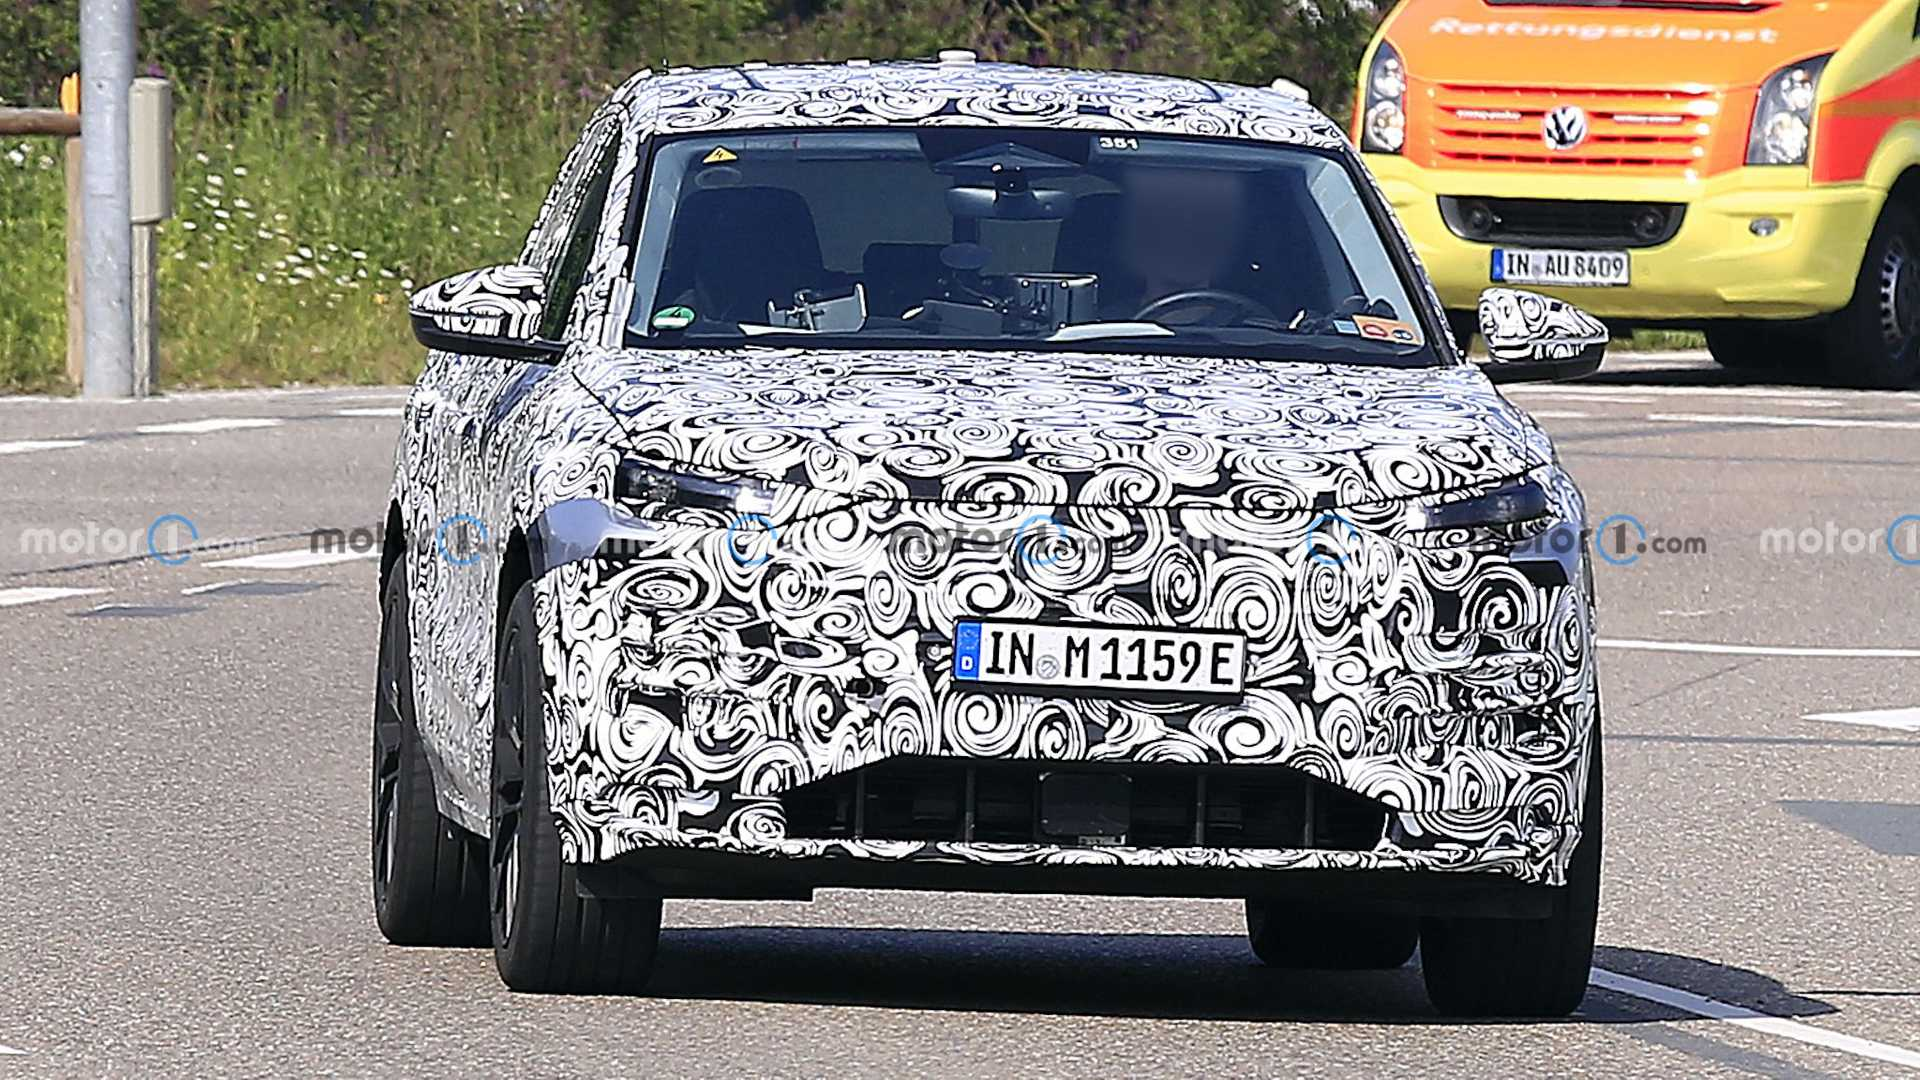 Audi will be launching the all-electric SUV dubbed the Q6 e-tron next year, which will slot in in between the Q4 e-tron and the large e-tron model, based on the PPE architecture of the latest Porsche Macan.